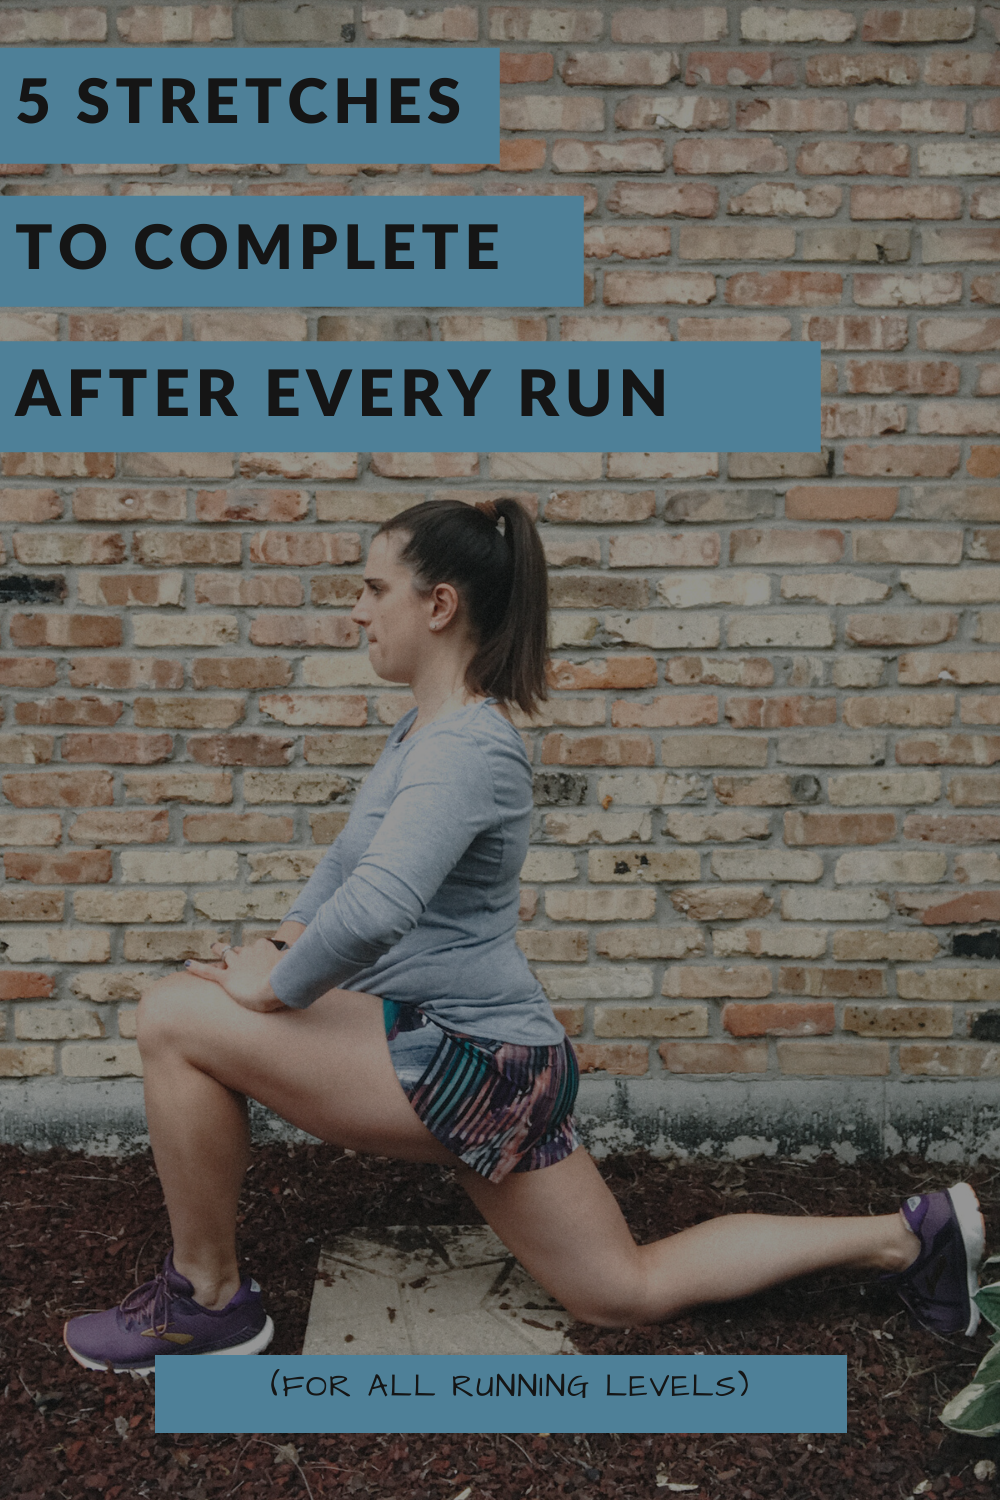 5 Stretches To Complete After Running